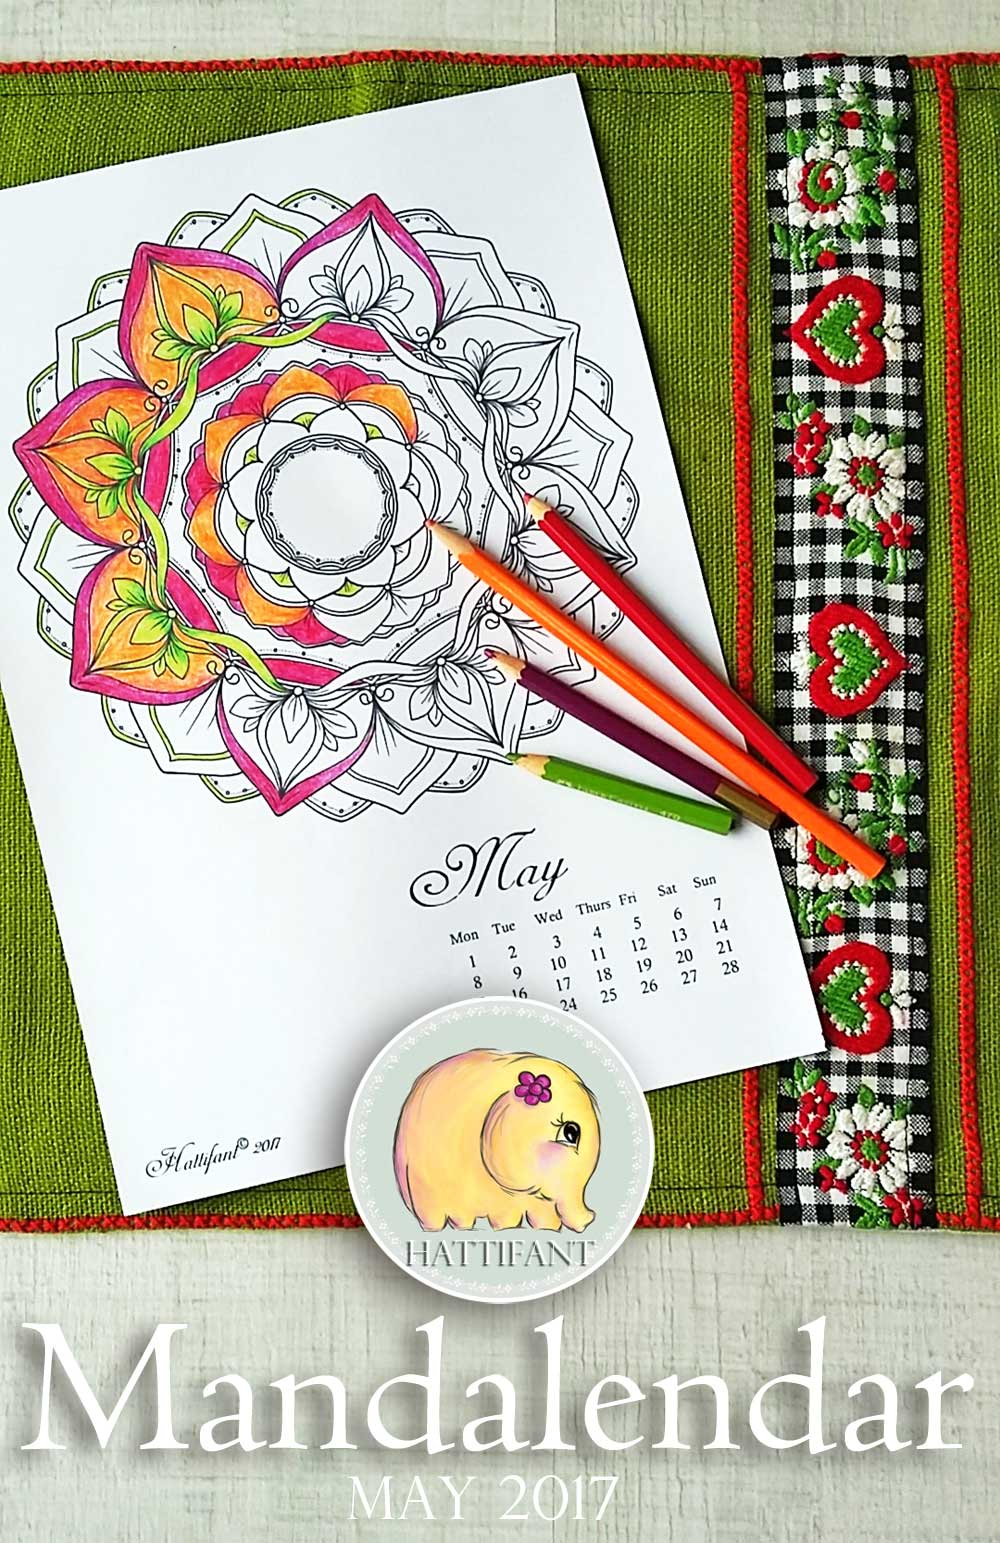 Hattifant's Mandalandar 2017 a Mandala Calendar Coloring Page for May to download for free during May